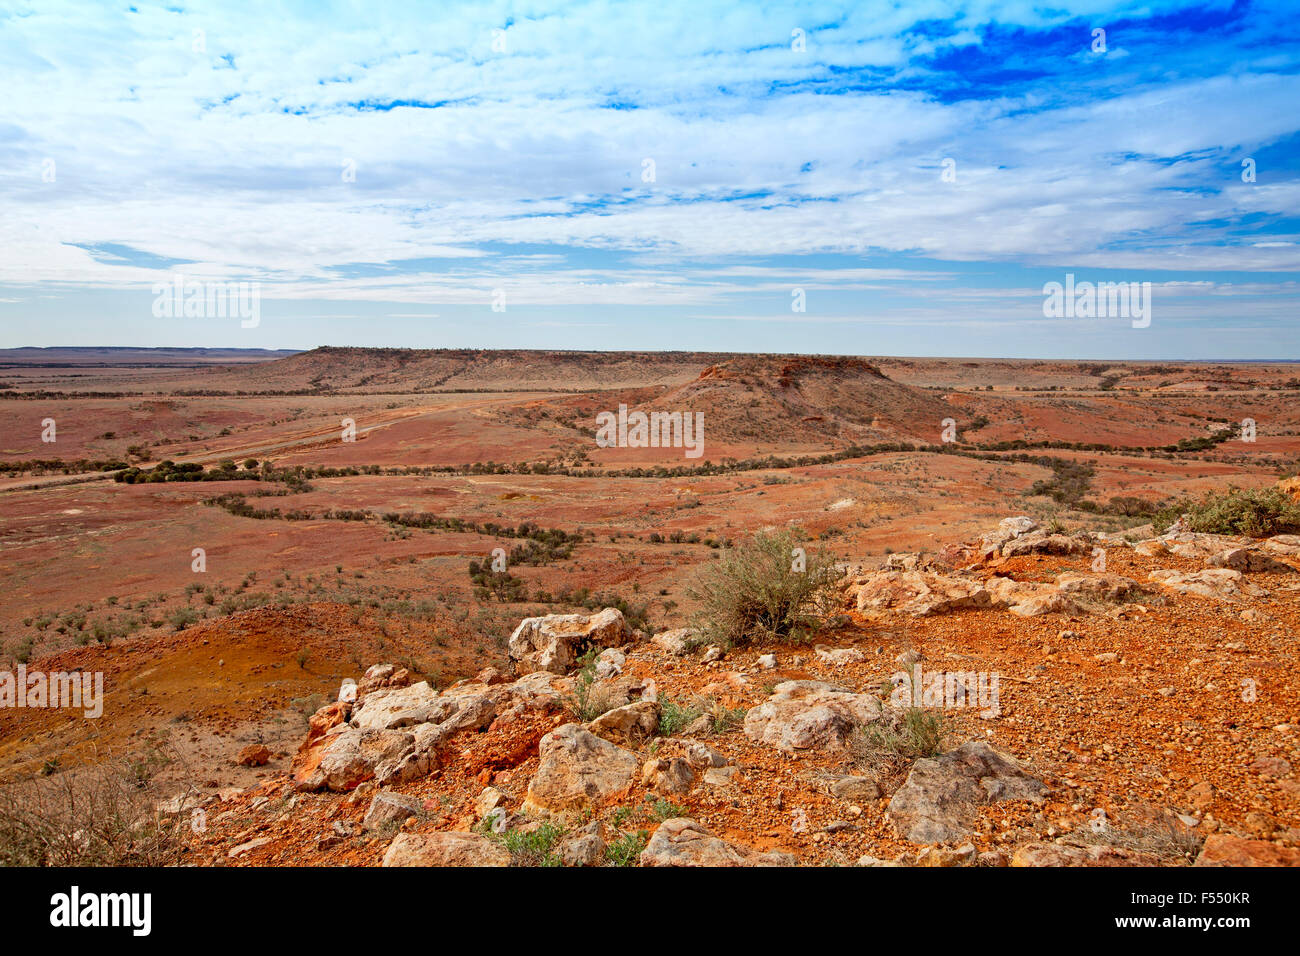 Stunning Australian outback landscape from hilltop lookout, rocky mesas on vast barren treeless red plains stretching - Stock Image